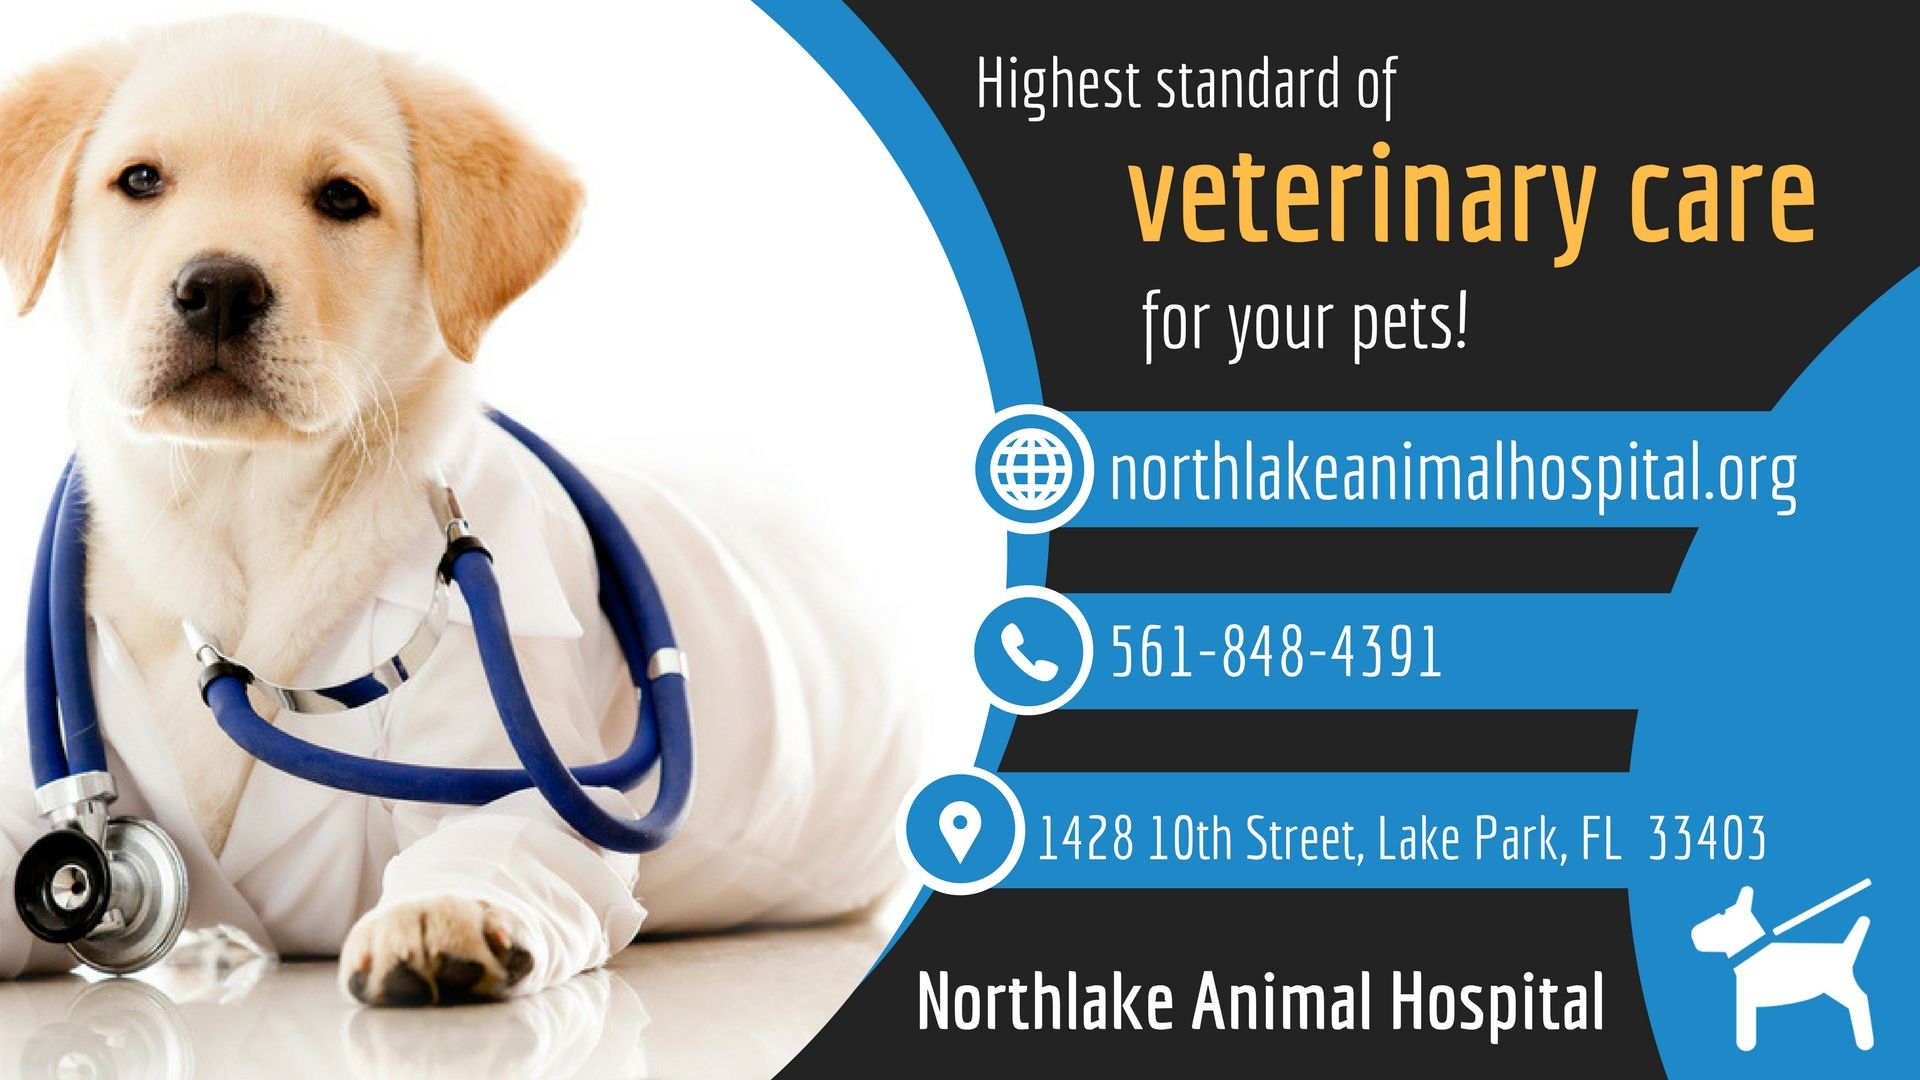 Best Veterinary Hospital For Your Pet Animal Hospital Veterinary Hospital Veterinary Care